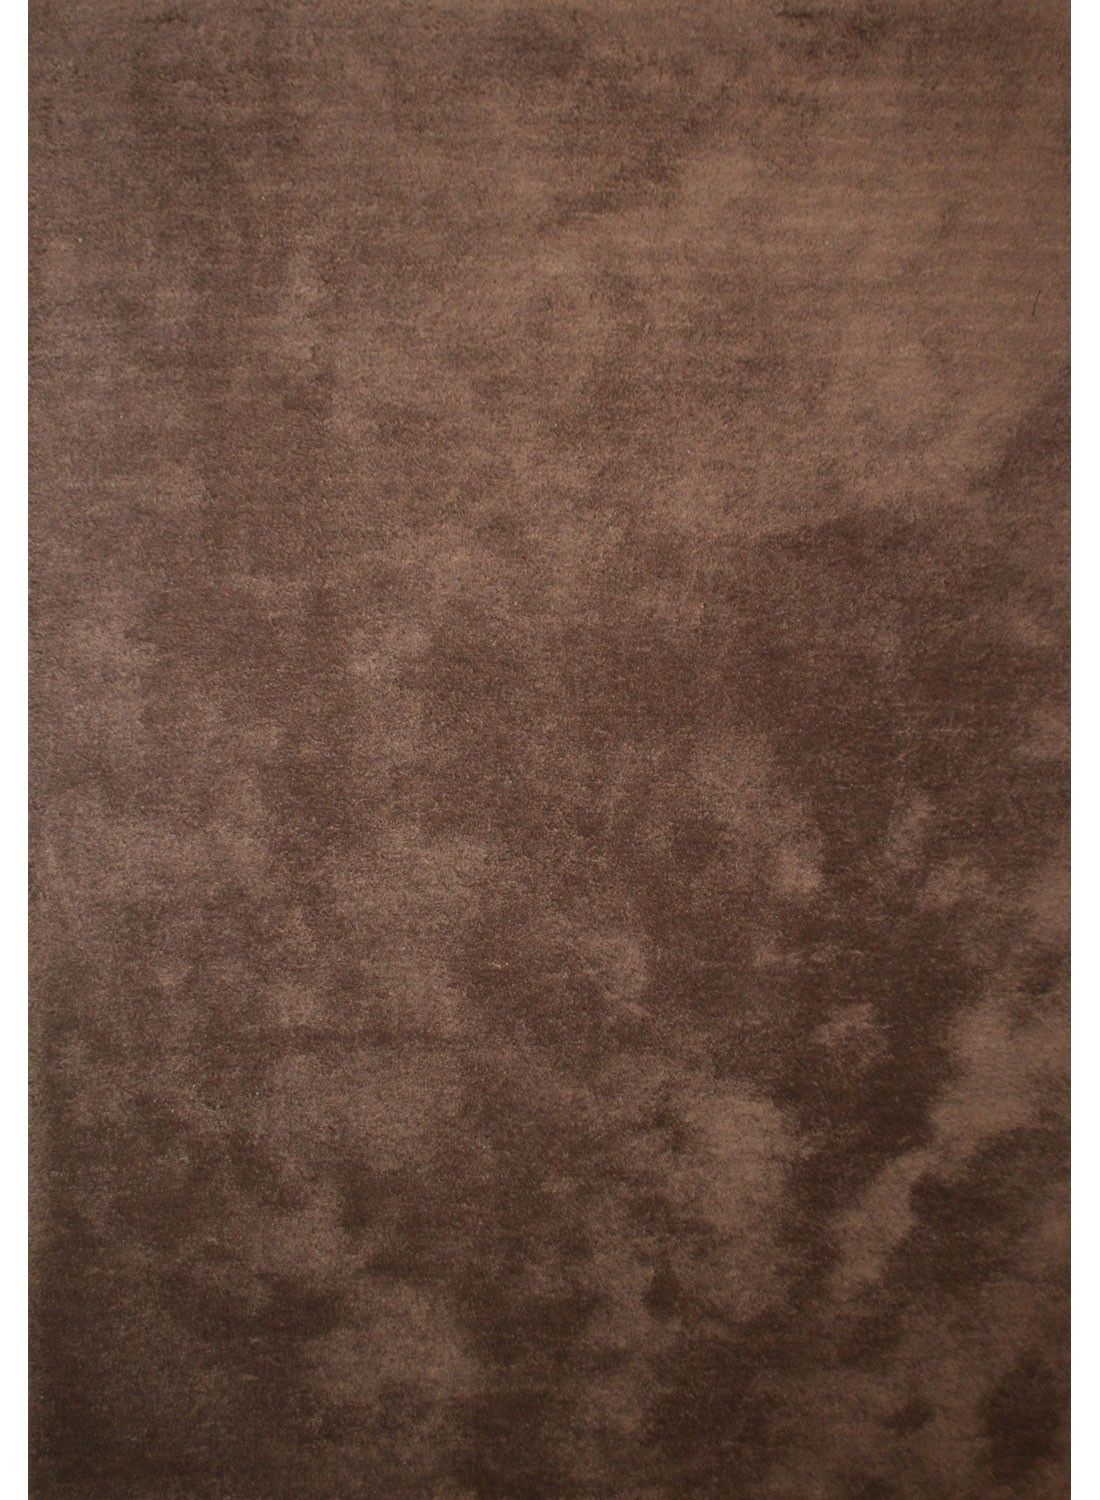 les tapis boston marron - Tapis Marron